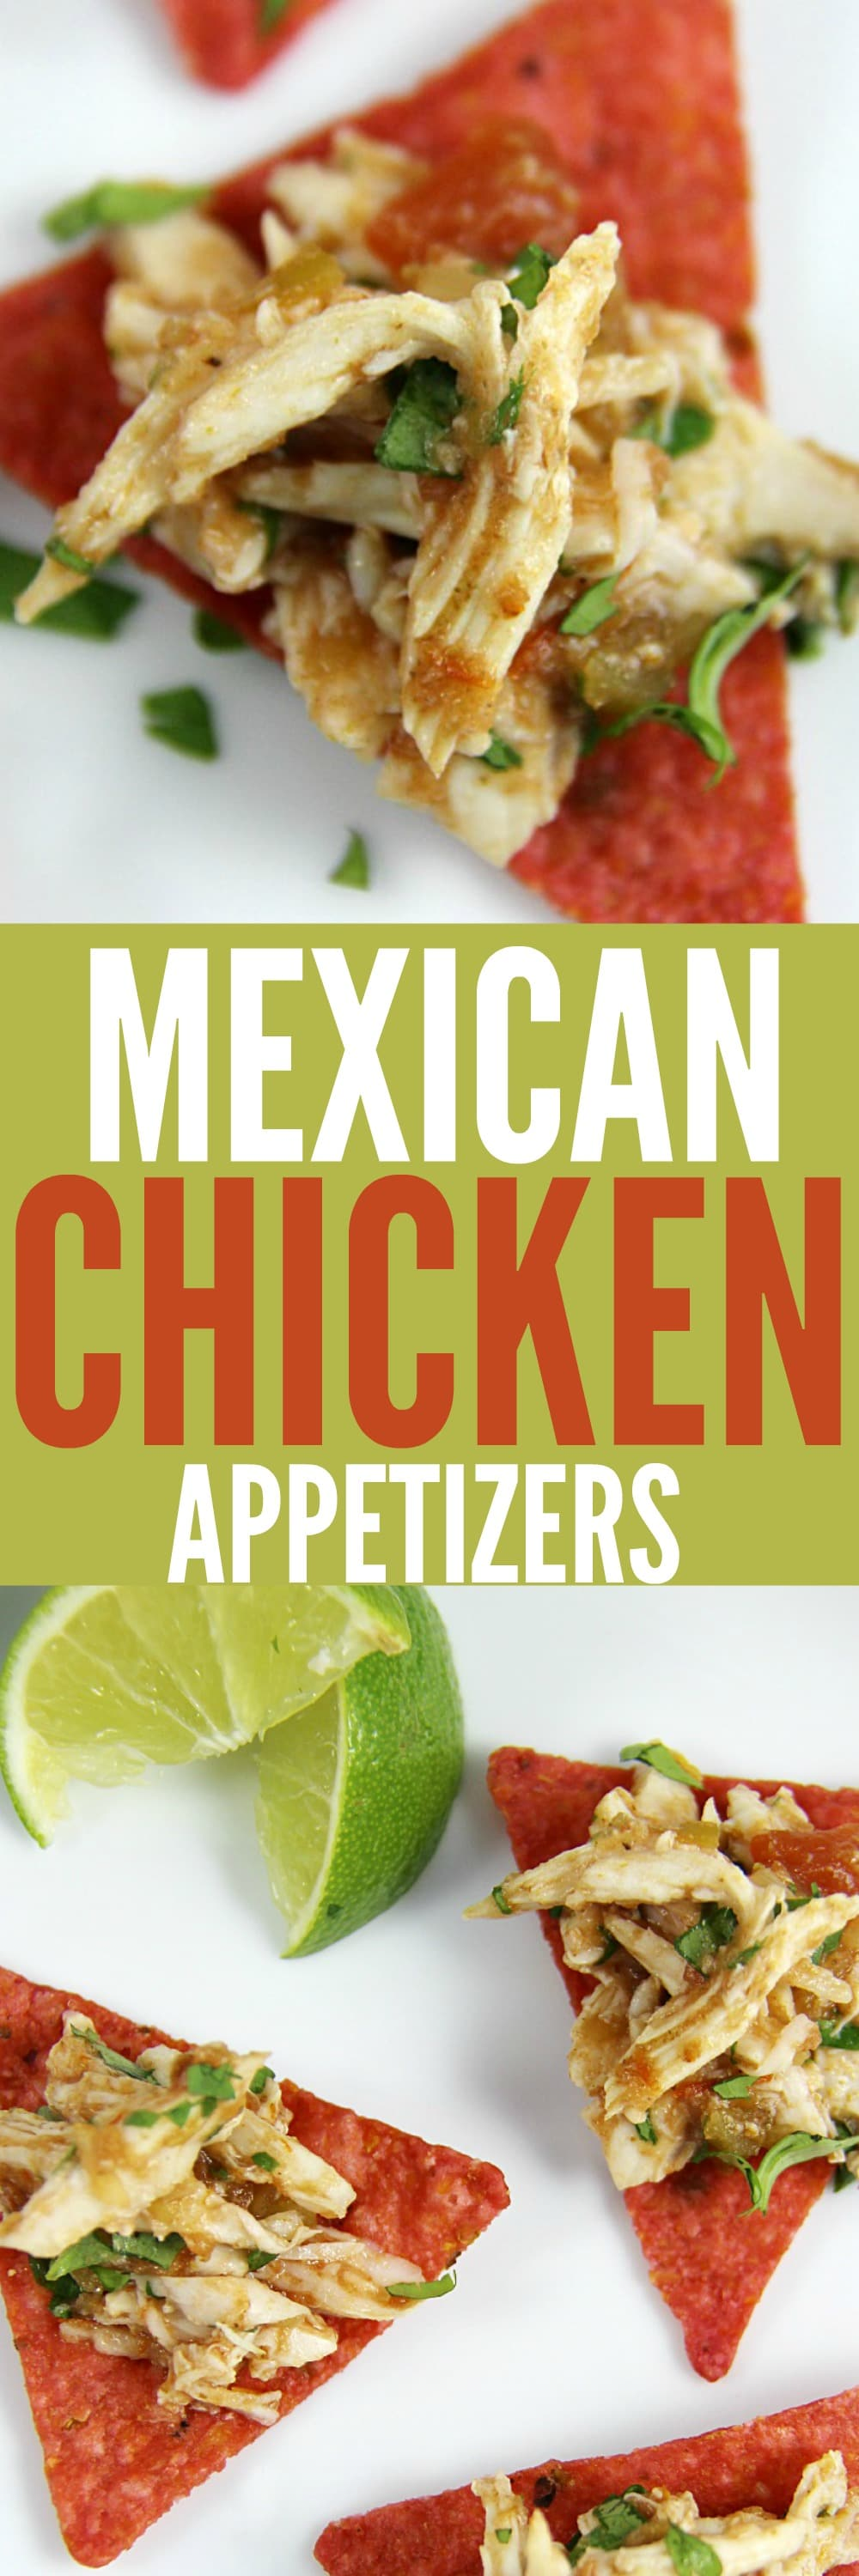 Mexican Chicken Appetizers